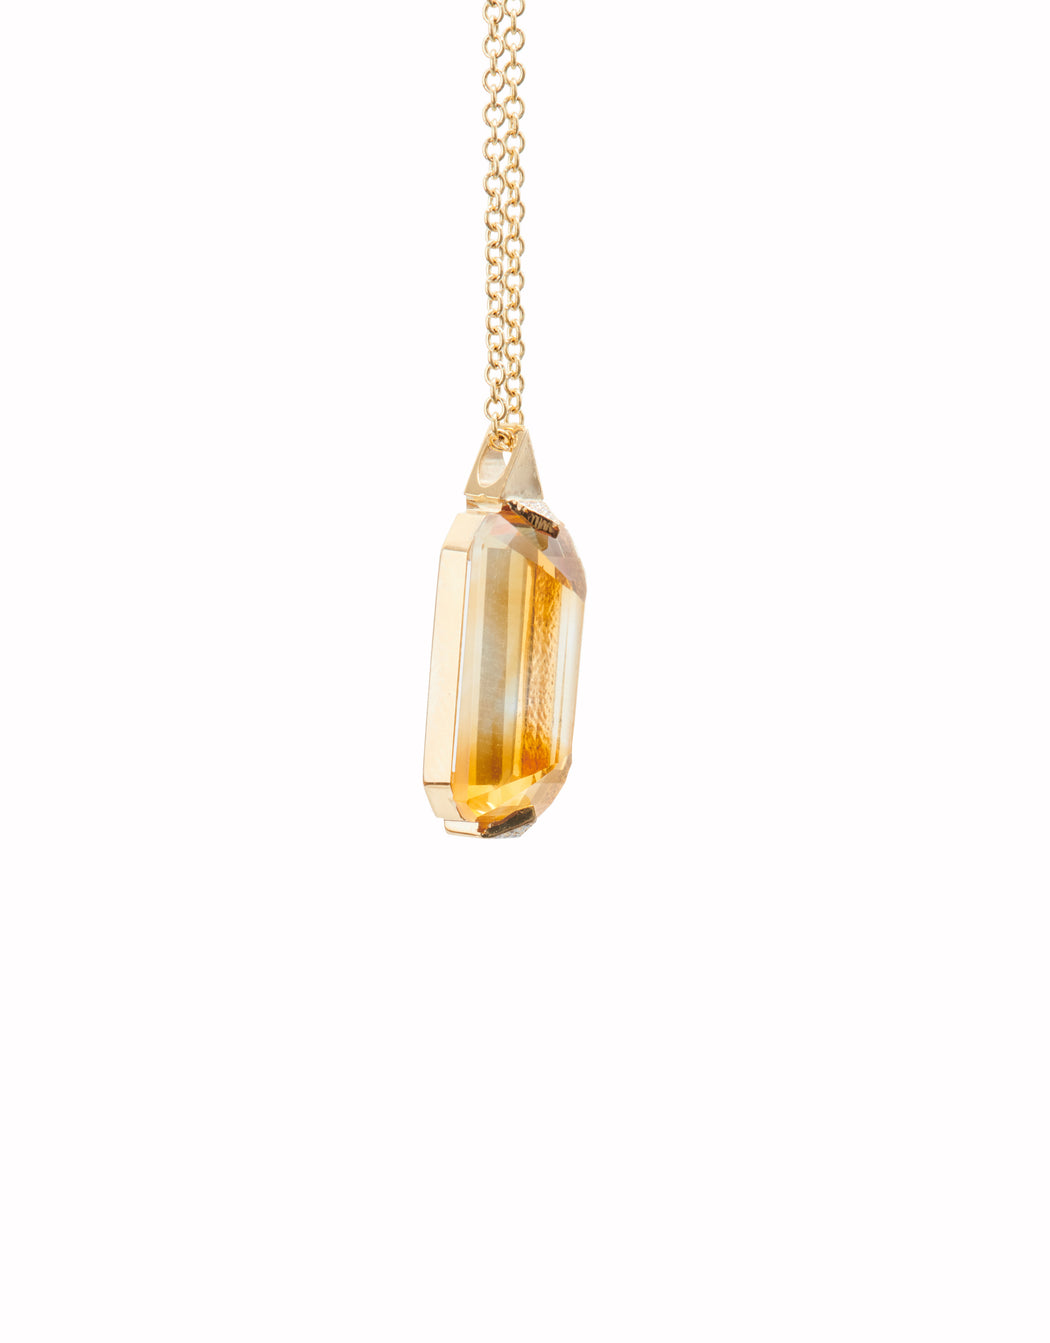 ELONGATED GOLD PAVE CITRINE PENDANT